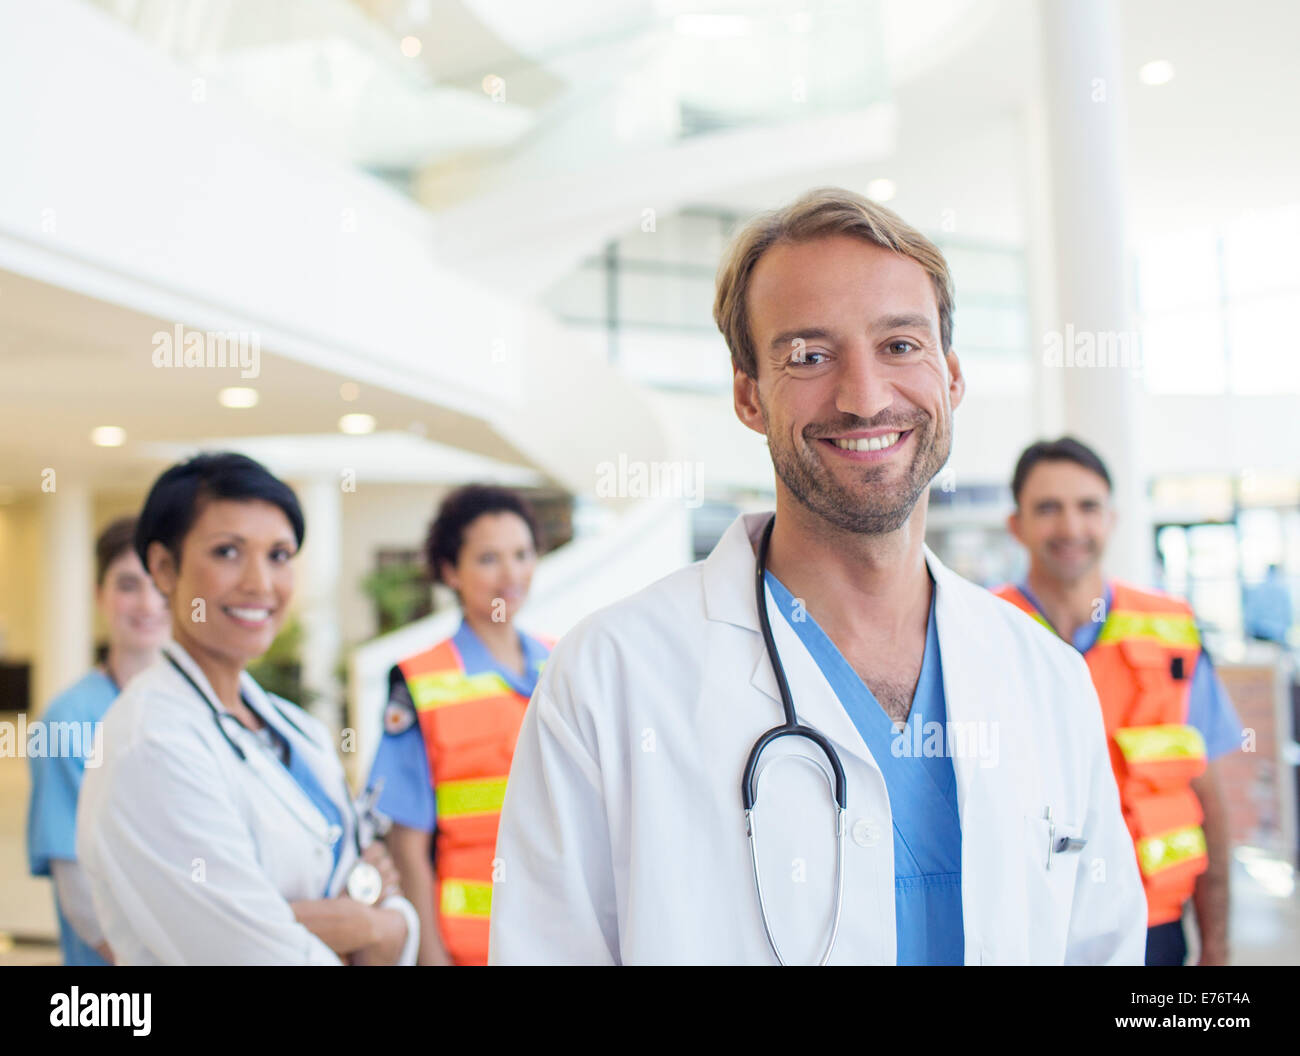 Doctors smiling in hospital - Stock Image